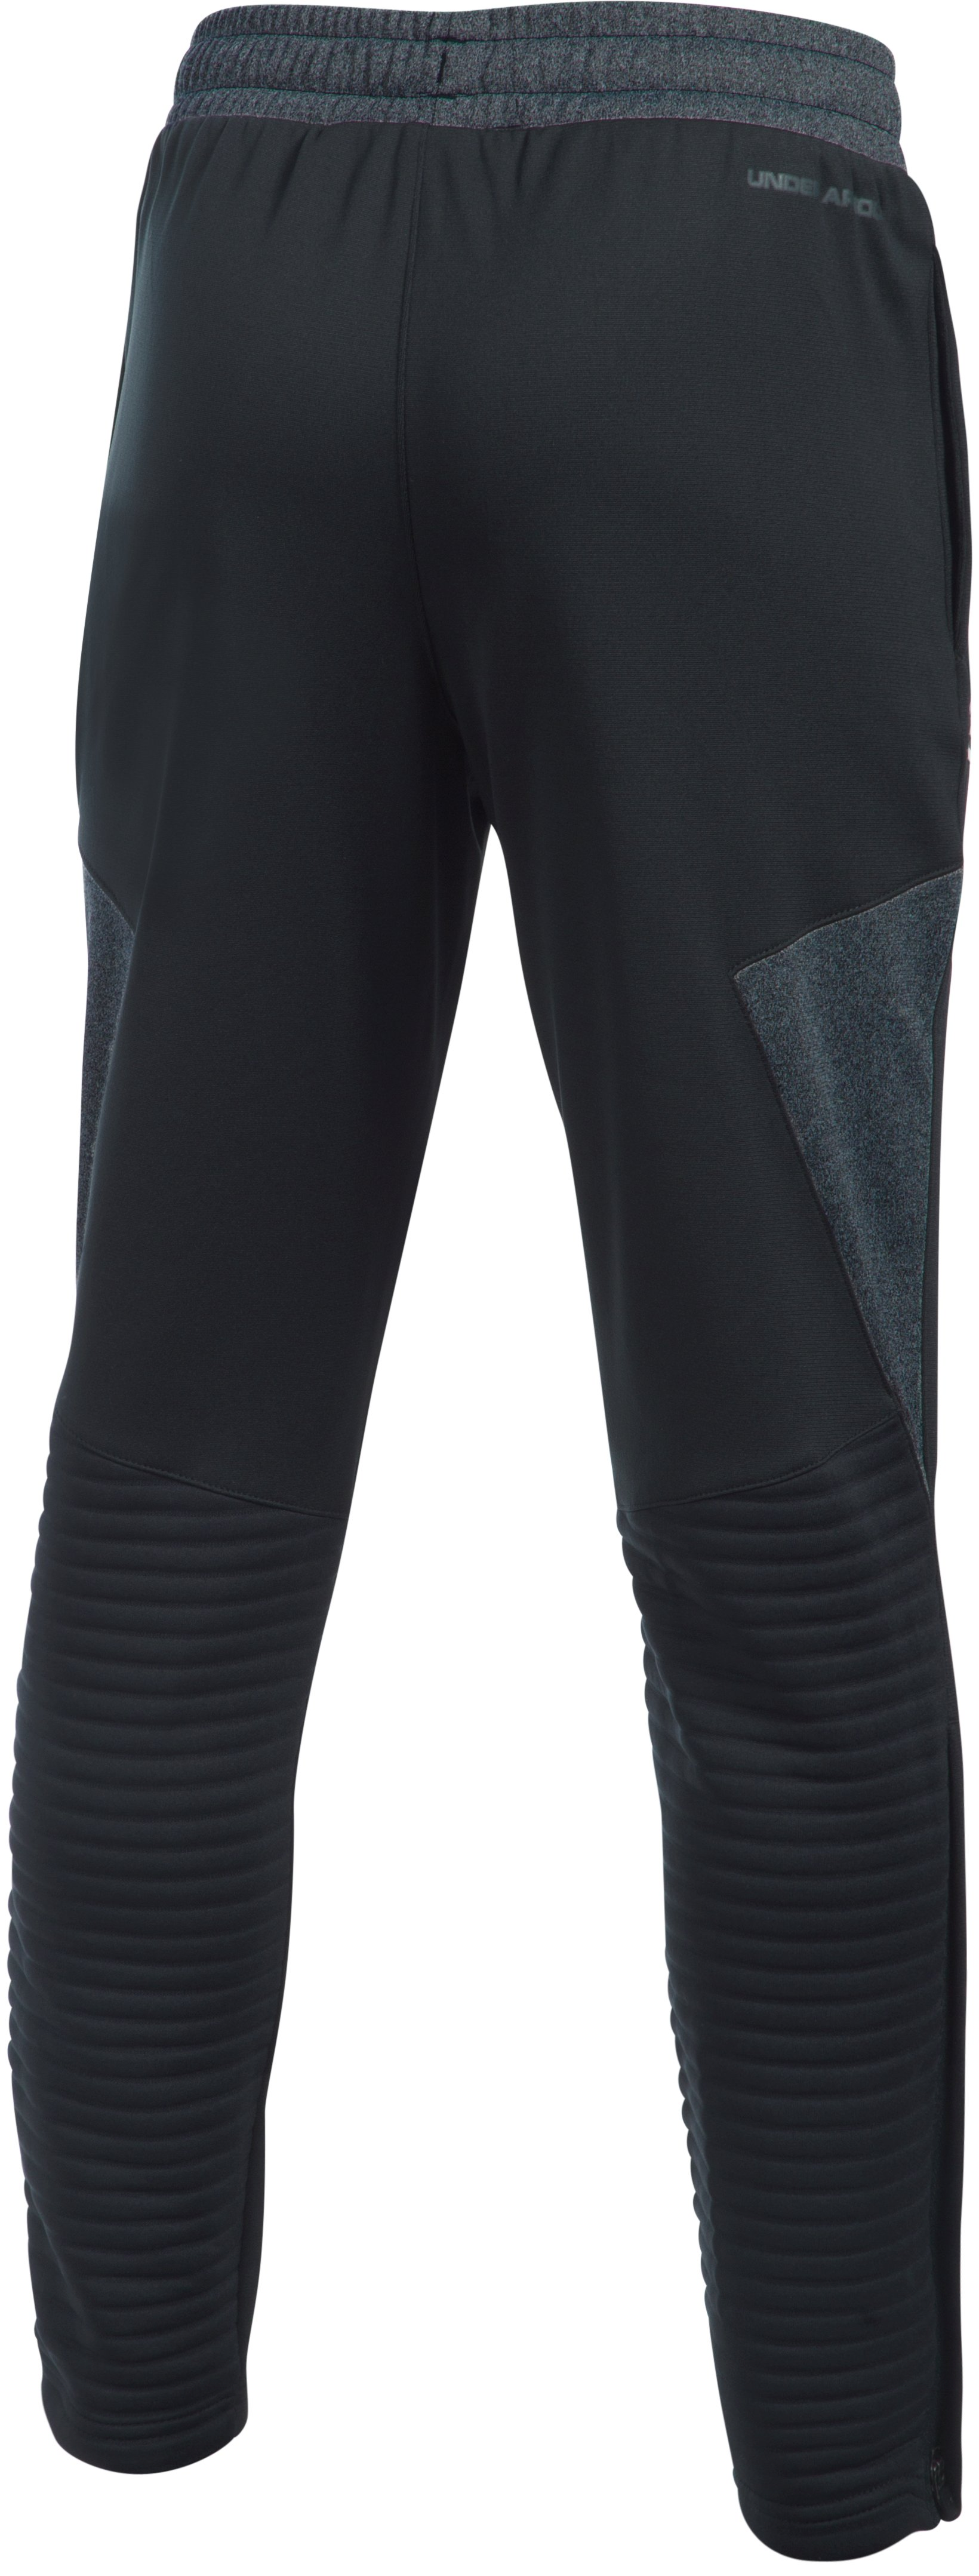 Boys' SC30 Performance Pants, Black